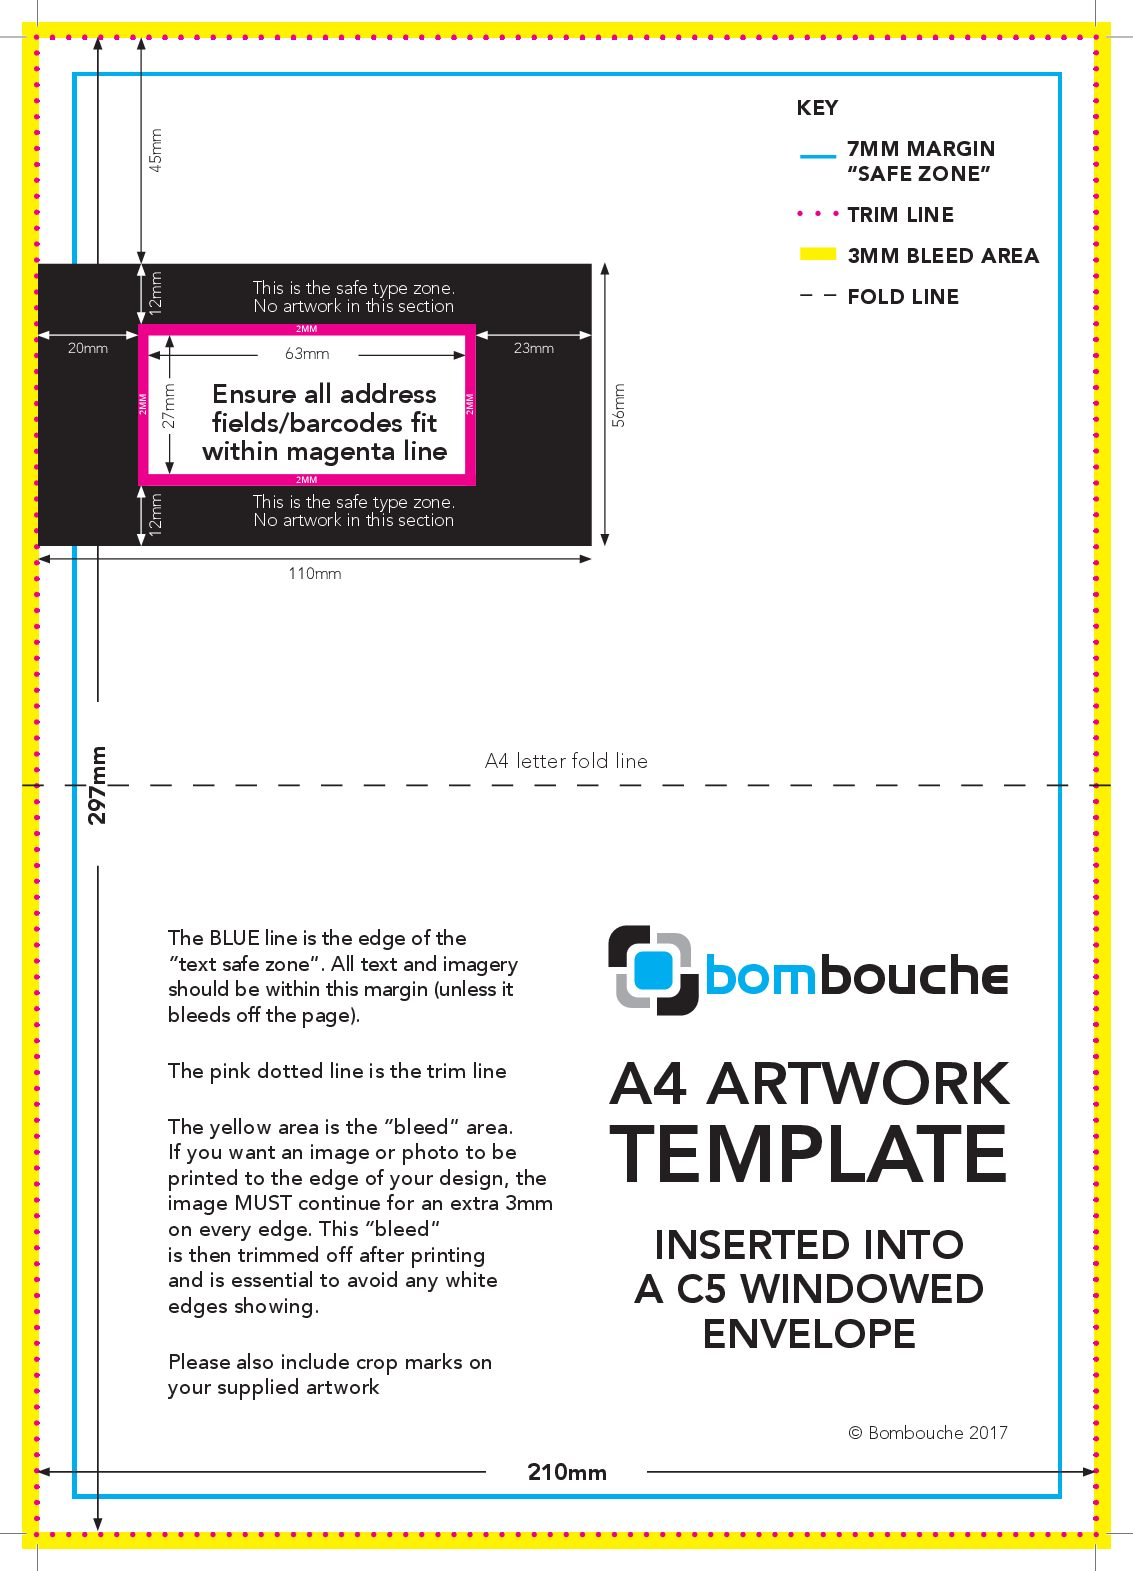 a4 artwork c5 envelope template direct printing and mailing from